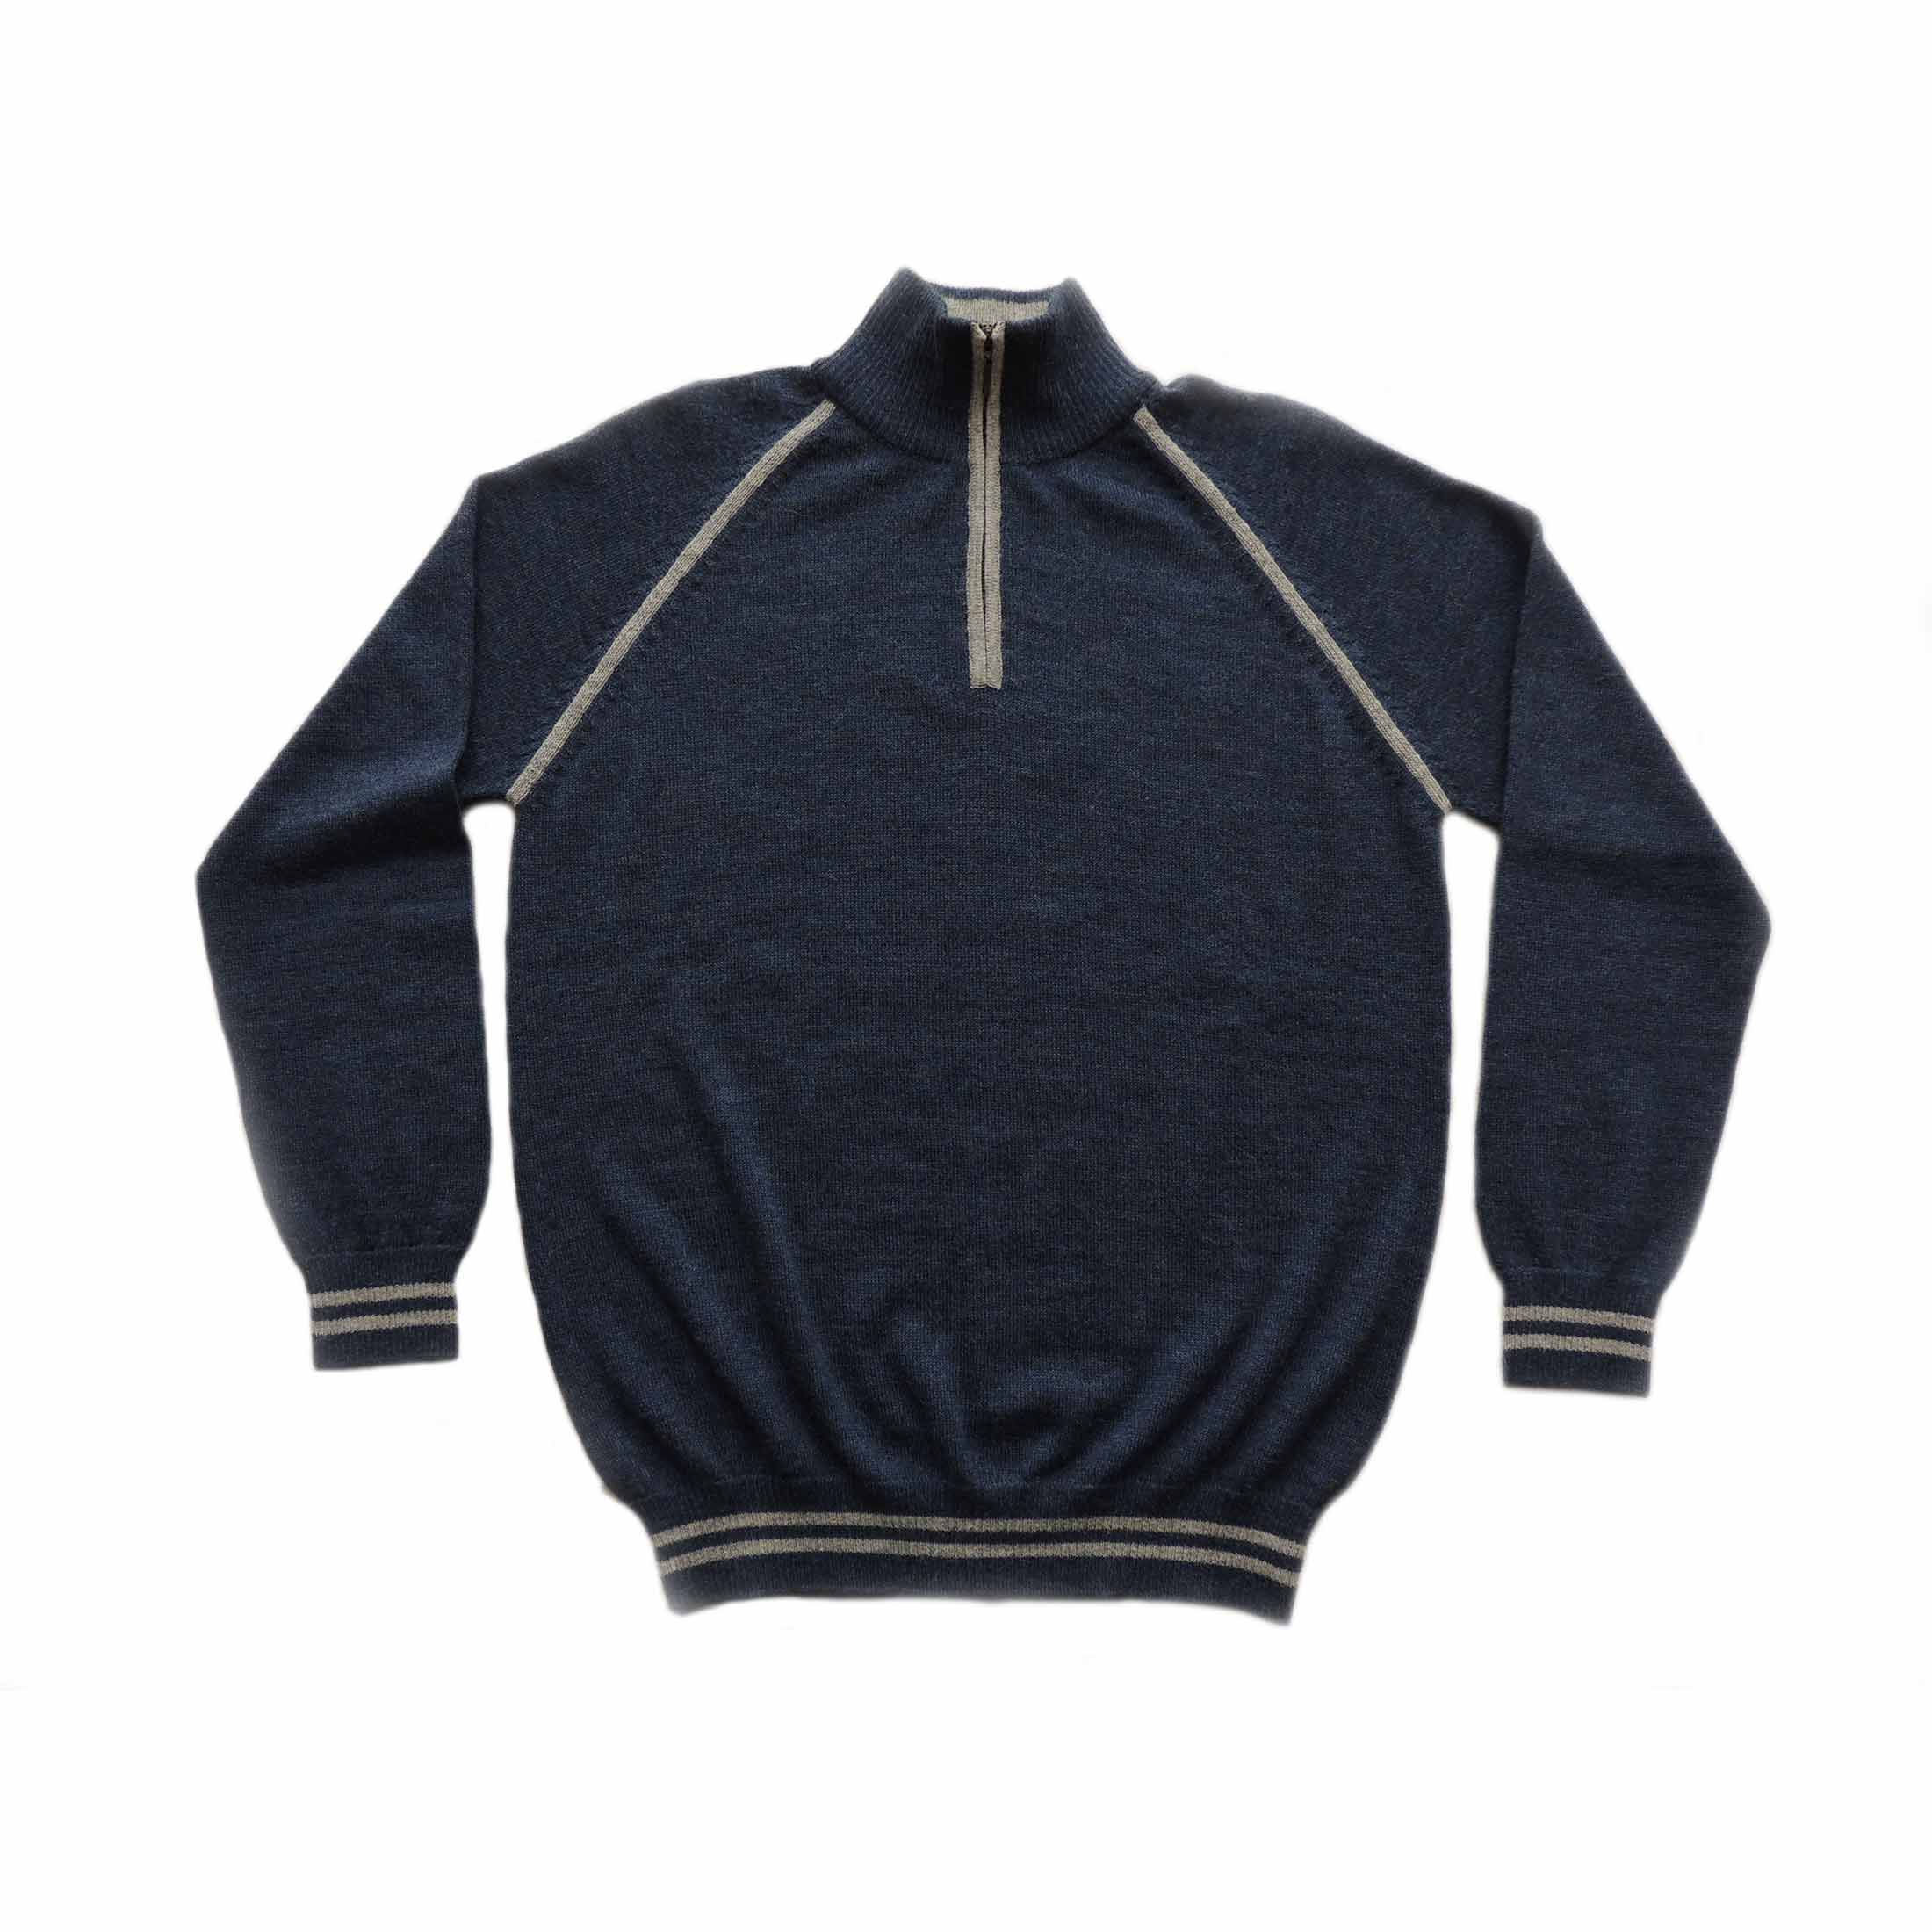 Men sweater with quarter zip, high closed neck, solid color with contrast color details, 100% baby alpaca.